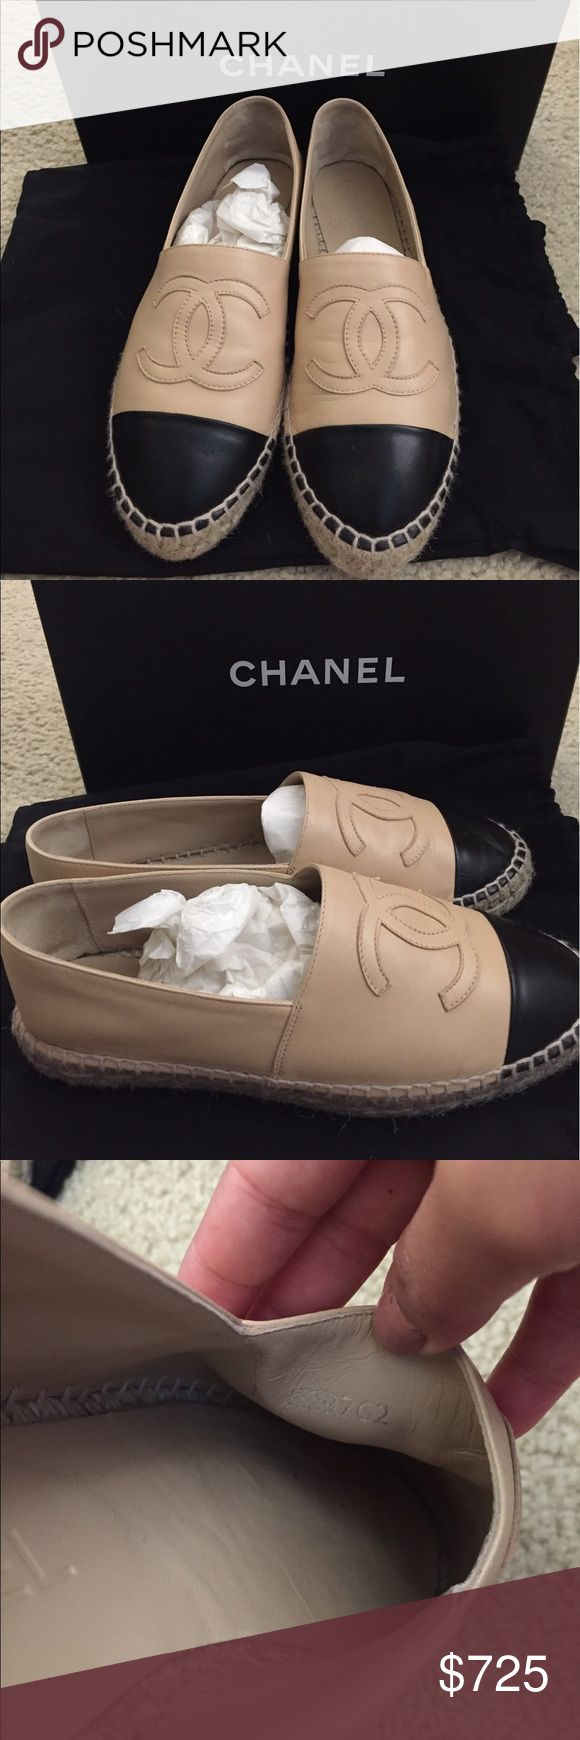 chanel espadrilles authentic chanel espadrilles bought from neimans only used couples of time for my florida trip. price is firm no trades i wont respond if you accept. comes with box dust cloth no returns know your chanel size this is europe size. CHANEL Shoes Espadrilles